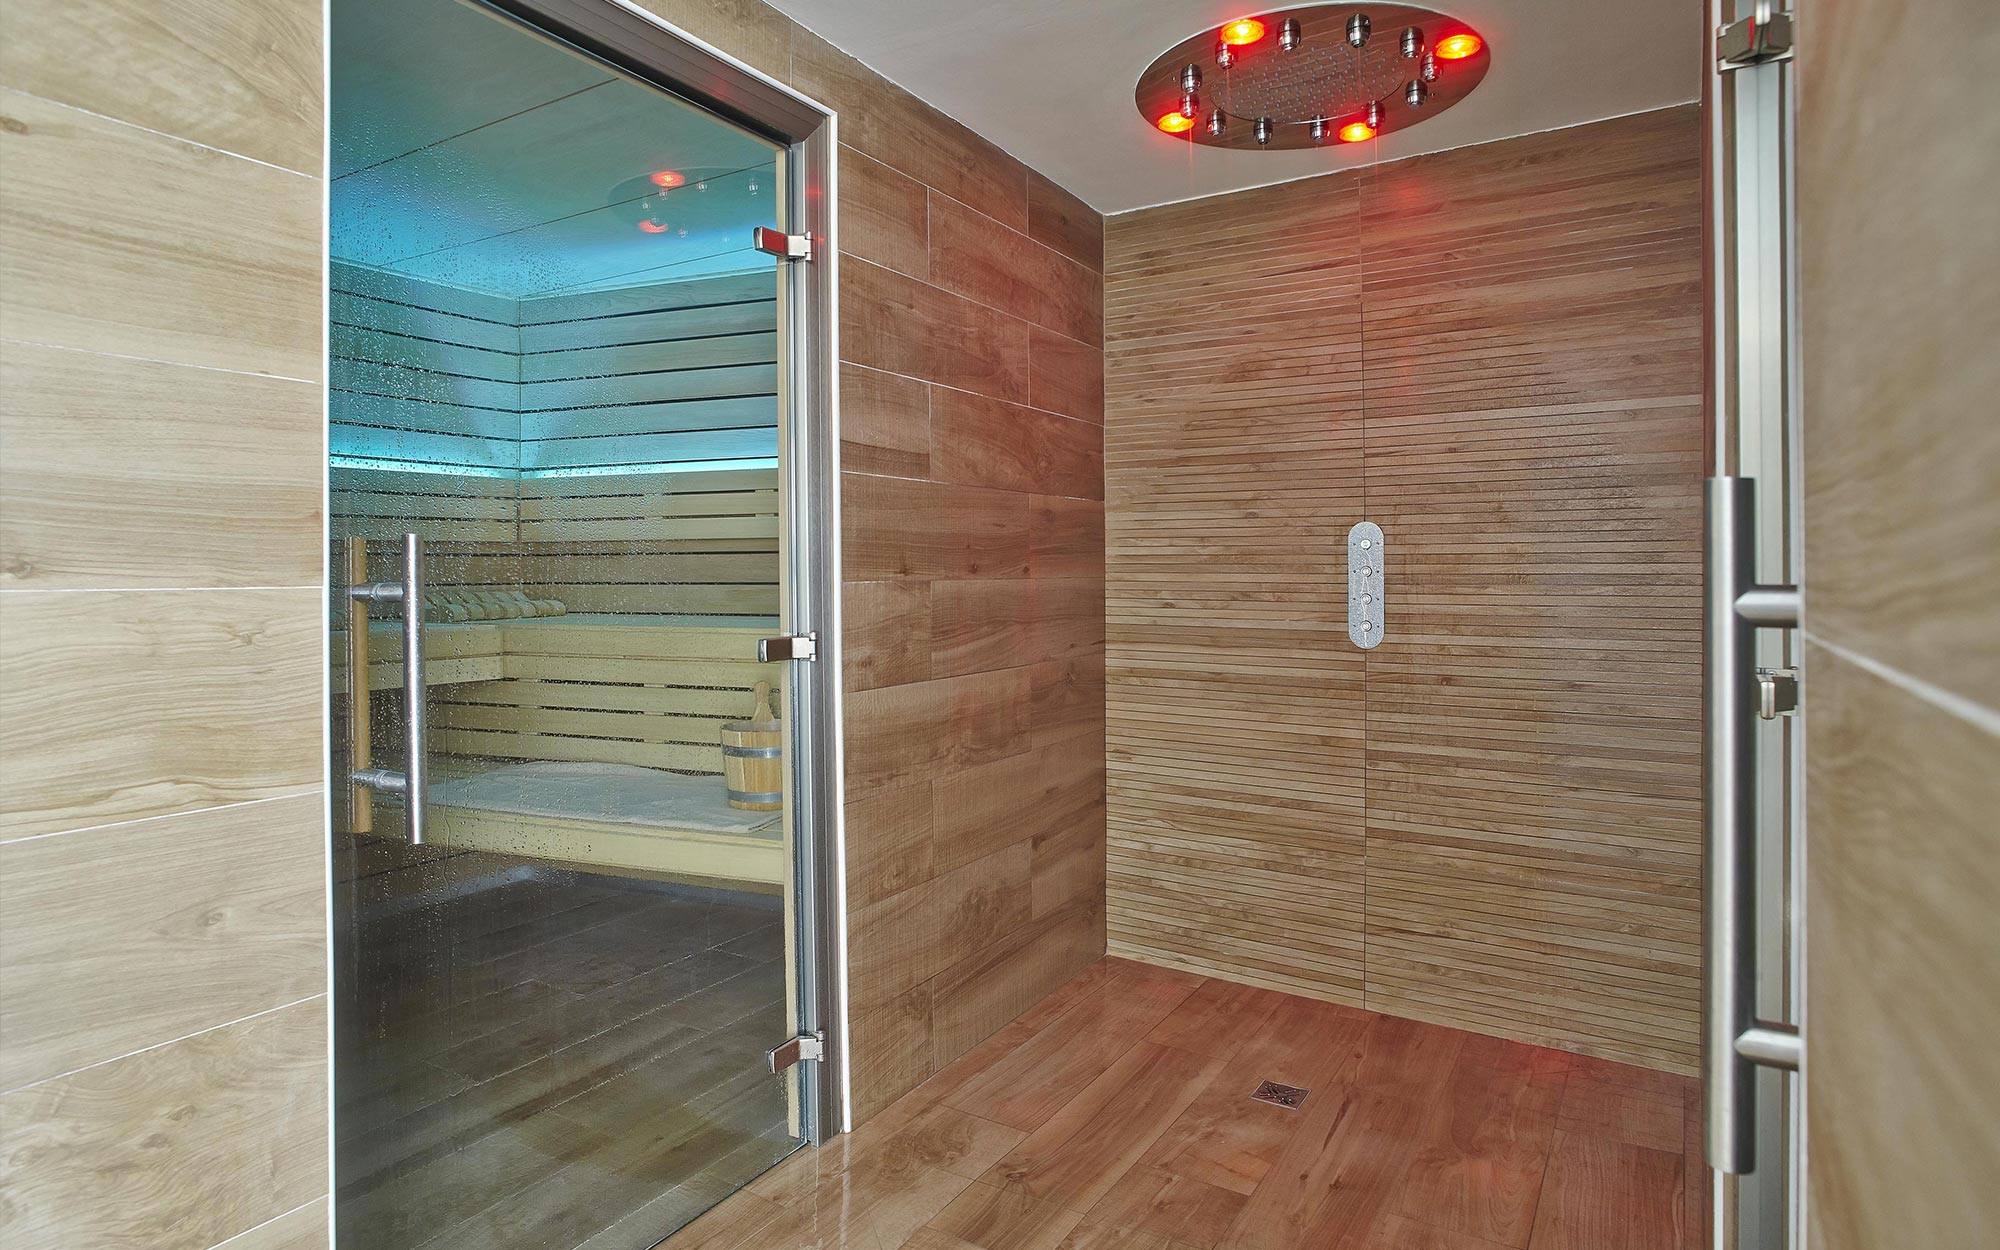 Salle De Bain Spa Sauna ~ spa saint paul de vence spa and relaxation in saint paul